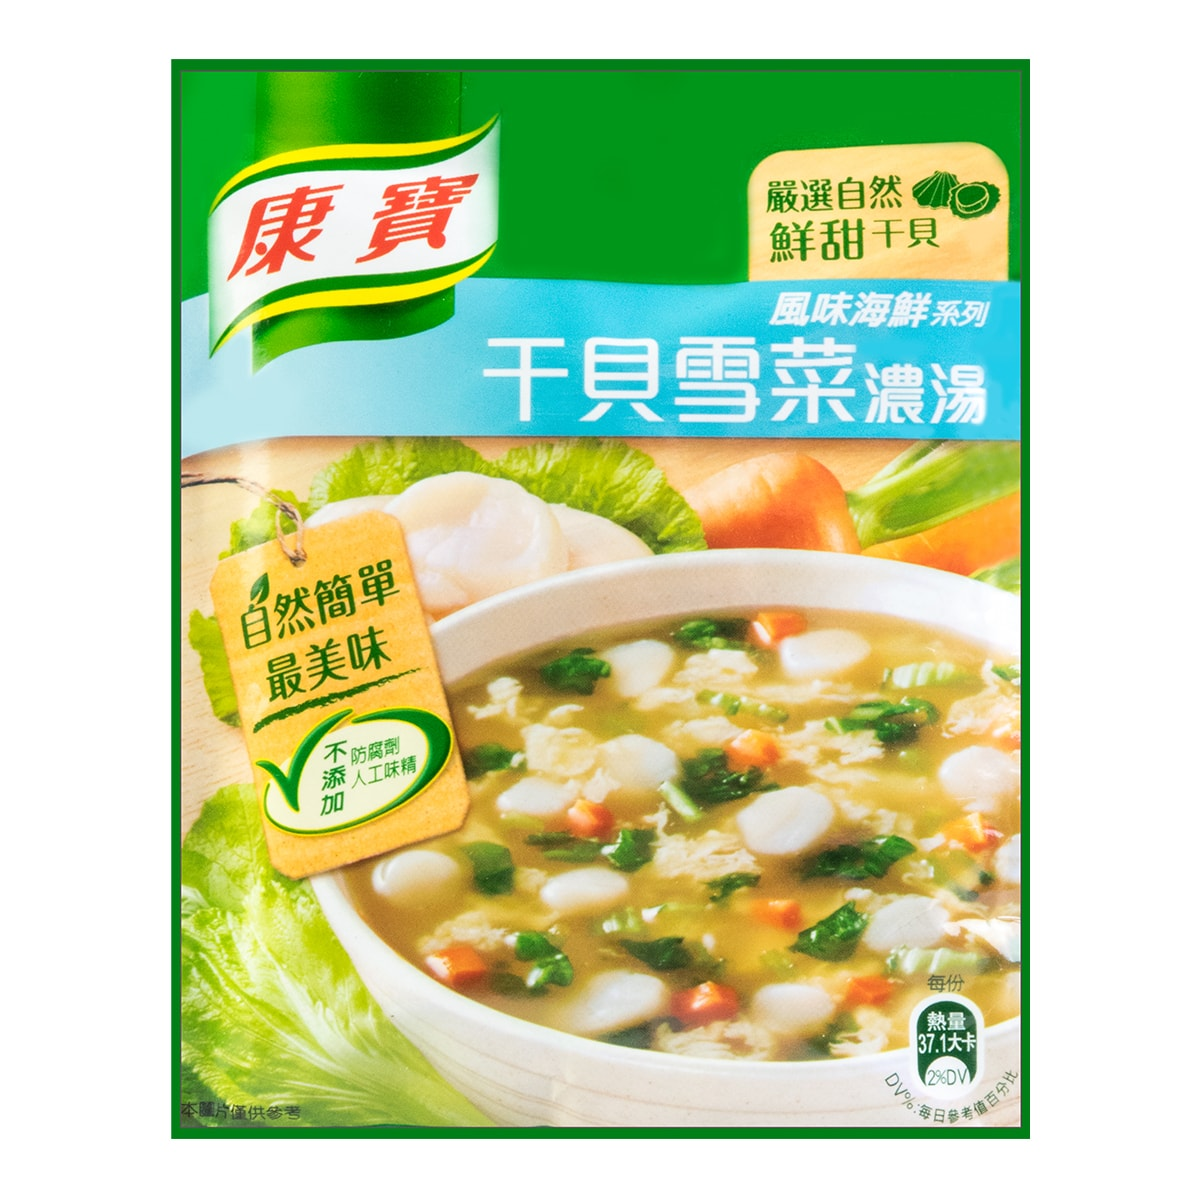 KNORR Seafood Series Pearl Scallop & Vegetable Soup 43.1g